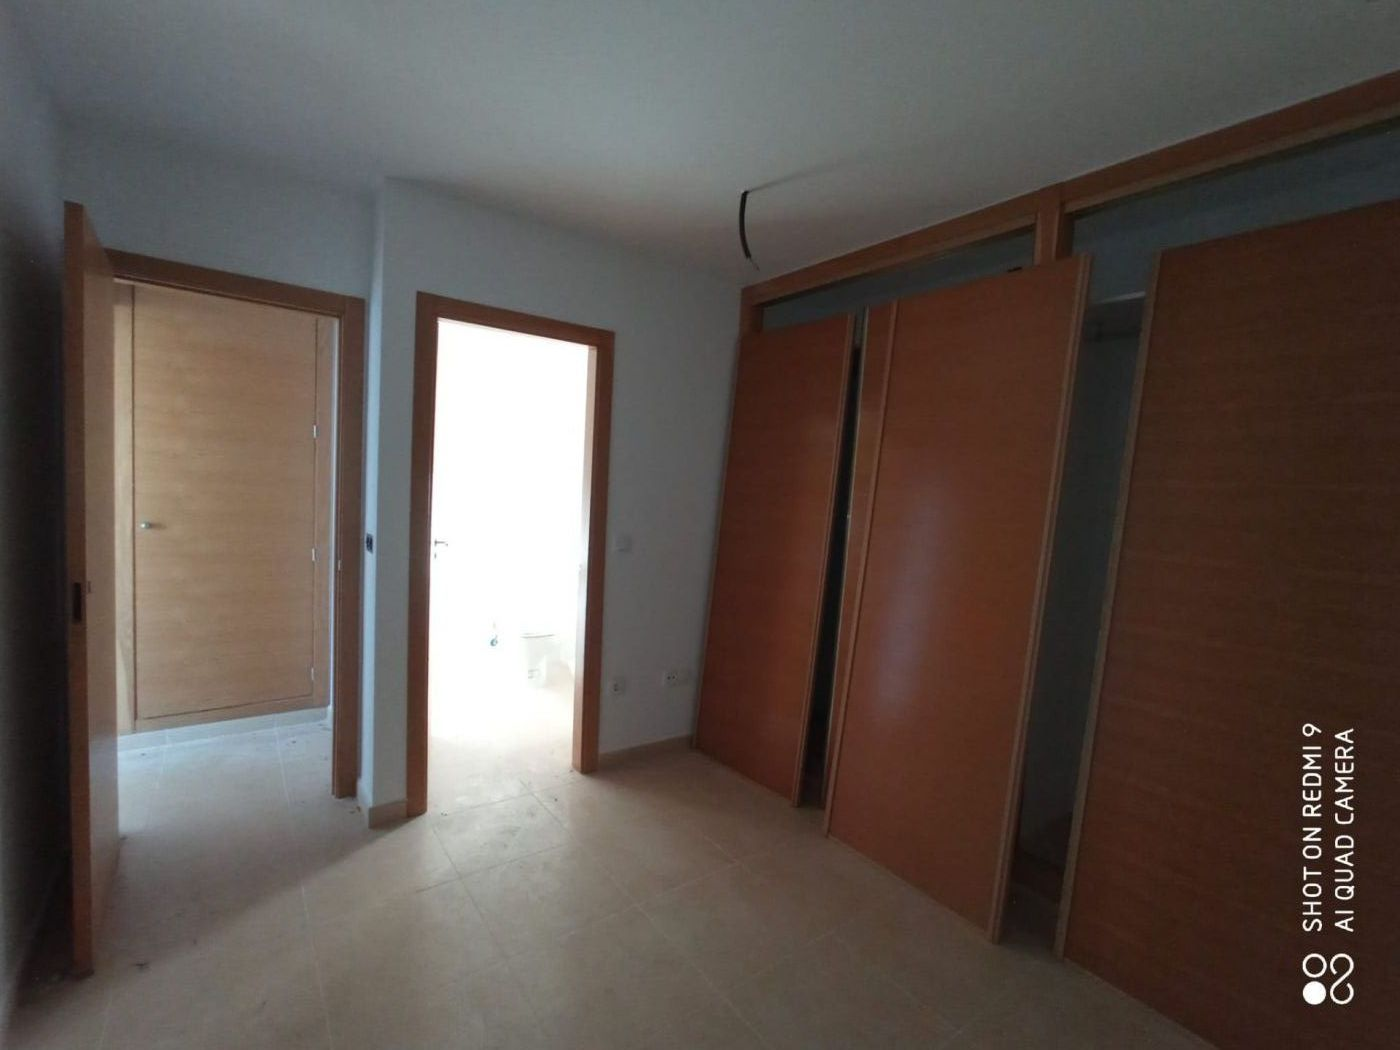 Image 8 Villa ref 3500 for sale in Condado De Alhama Spain - Quality Homes Costa Cálida